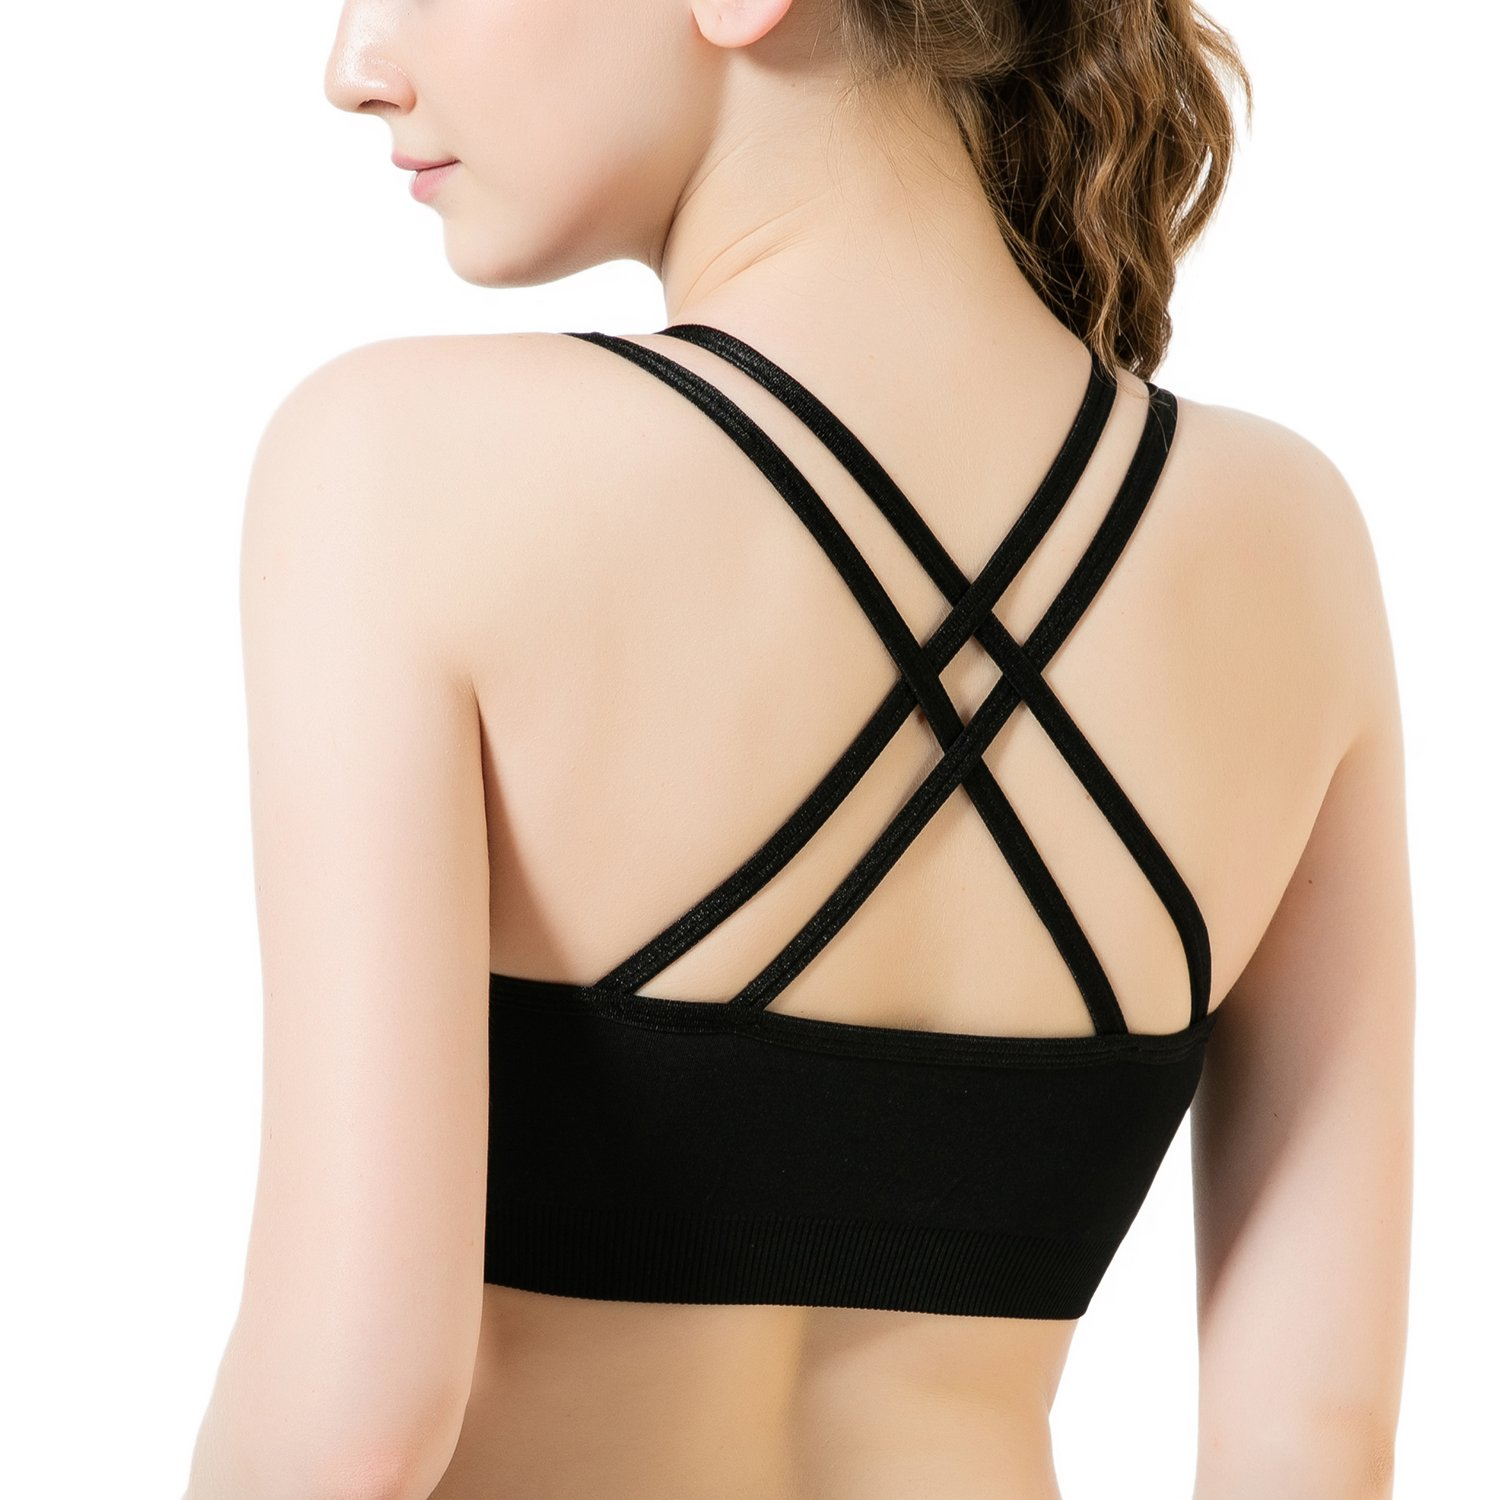 46900d851 Top3  CELERSPORT Women s Sports Bra Cross Back Medium Impact Wirefree  Workout Activewear Yoga Bras